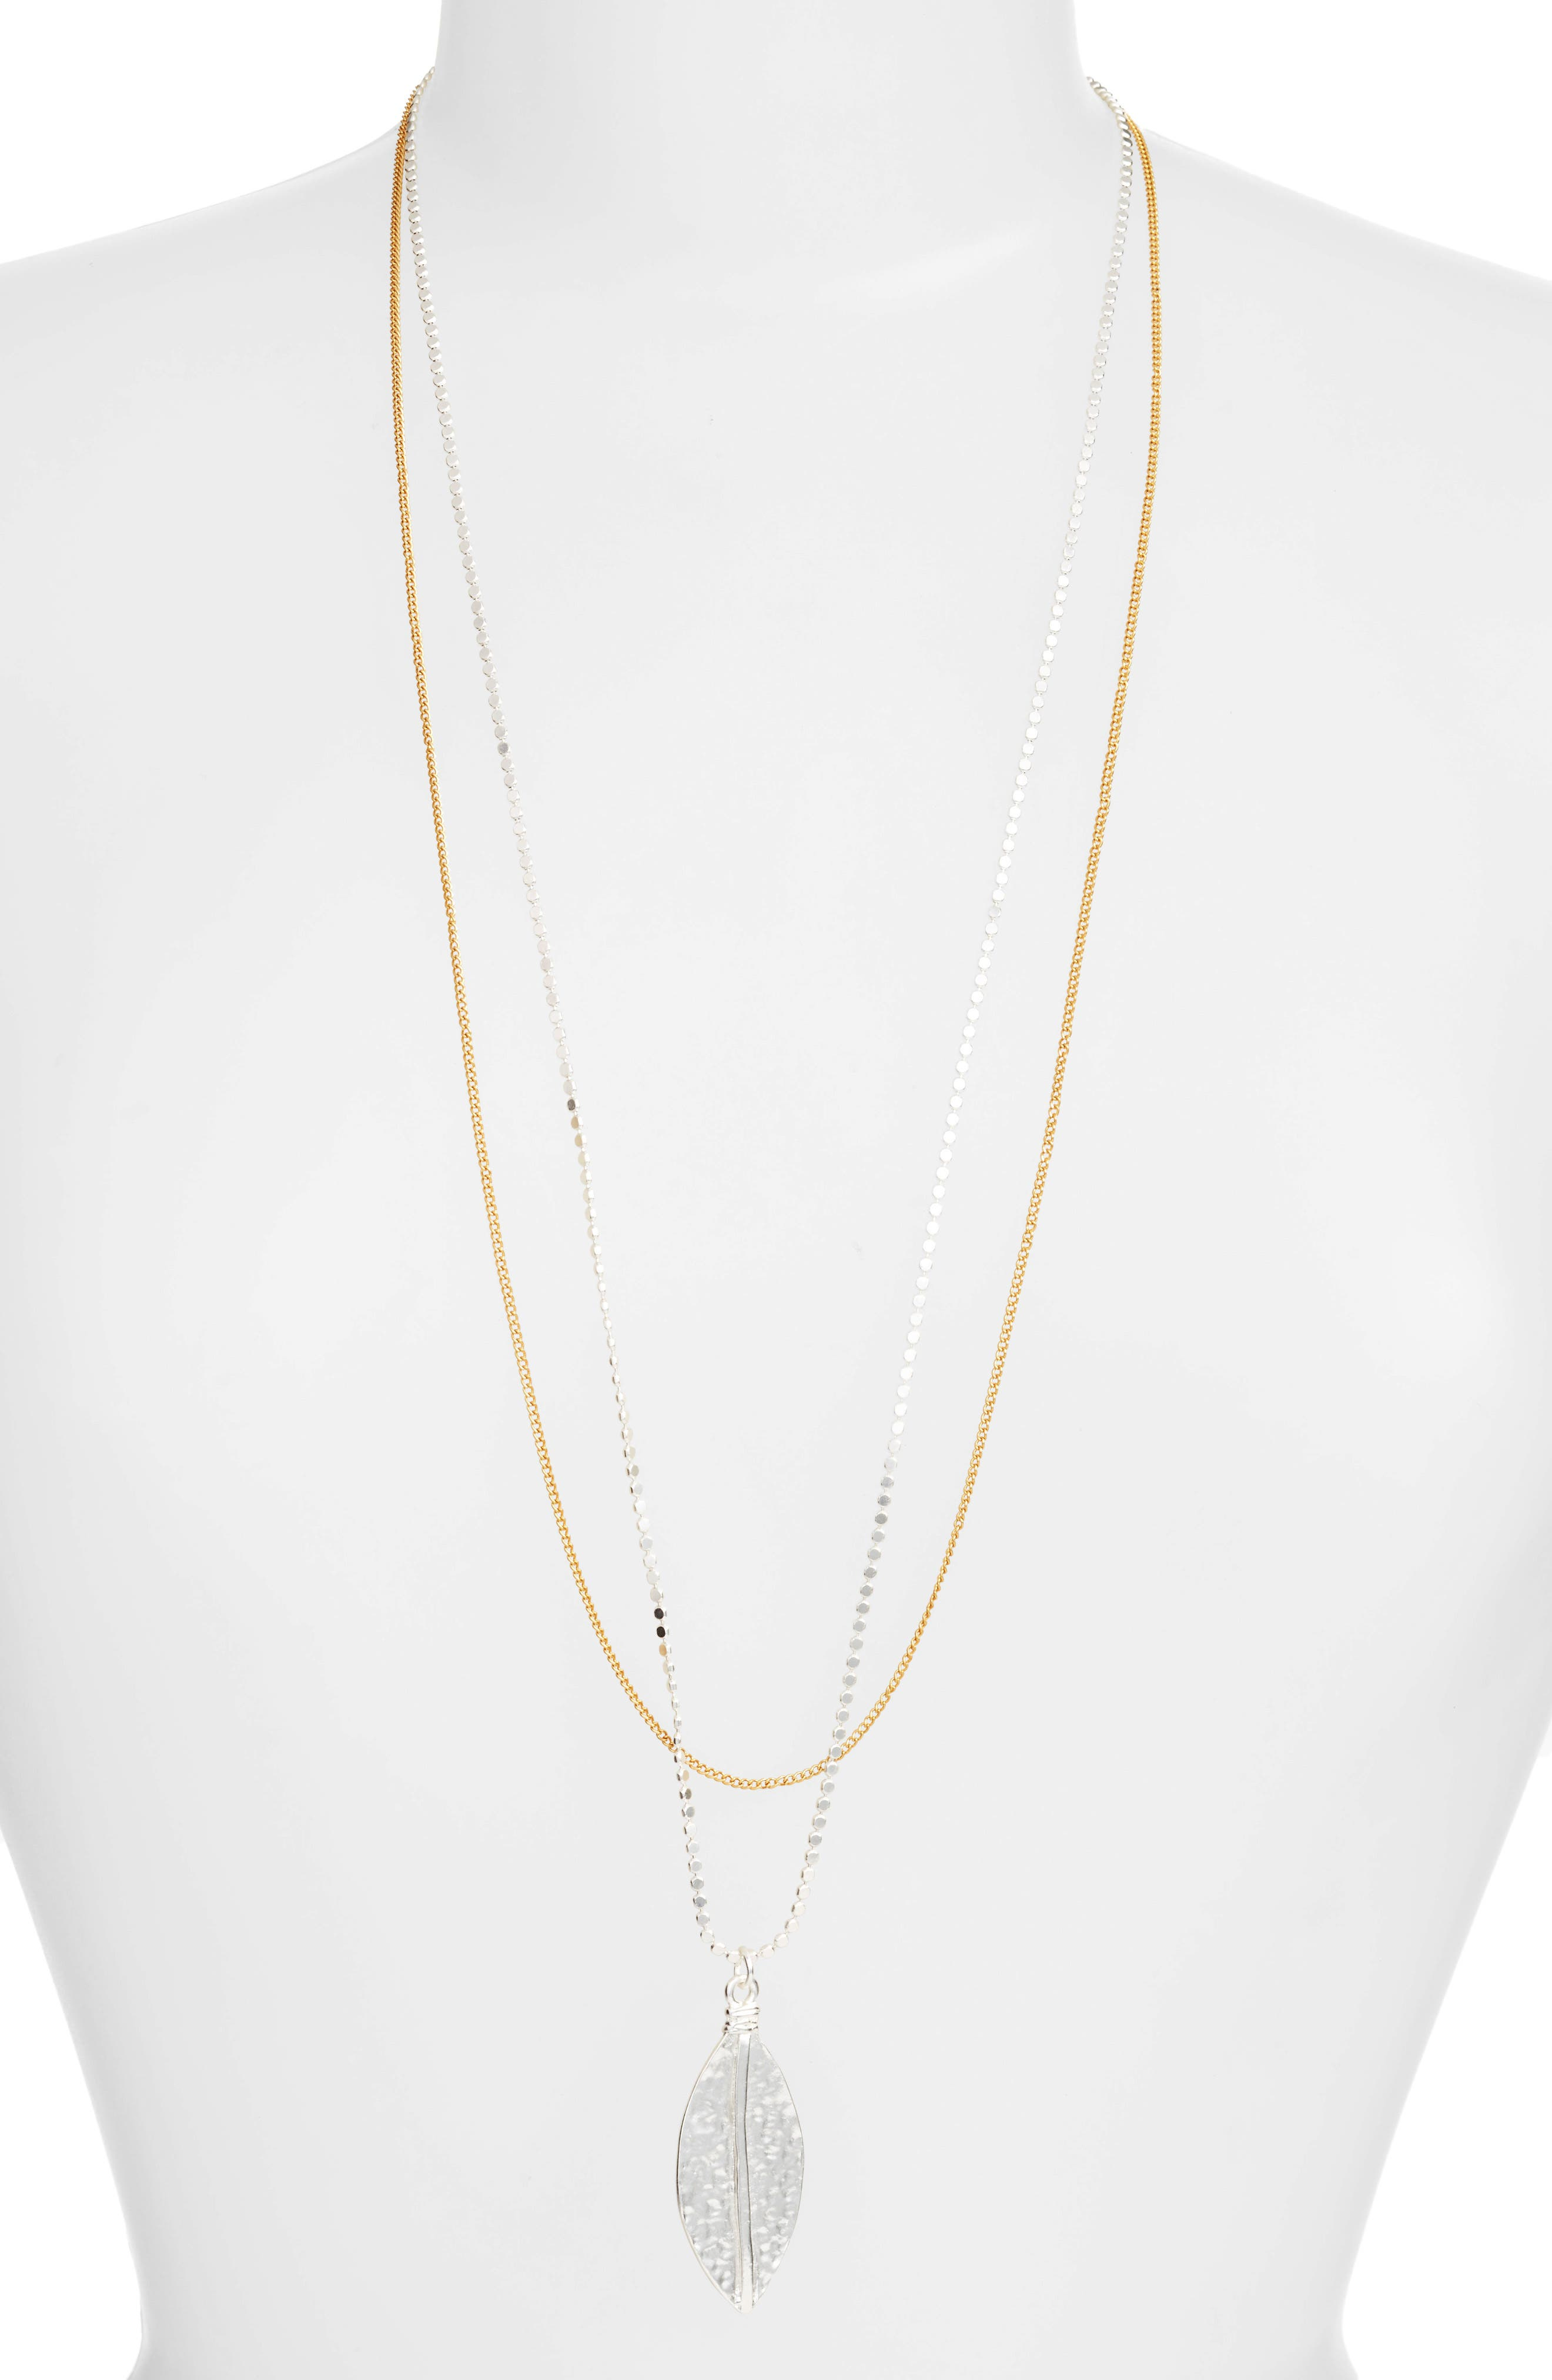 Long Multistrand Necklace,                             Main thumbnail 1, color,                             SILVER/GOLD MIX